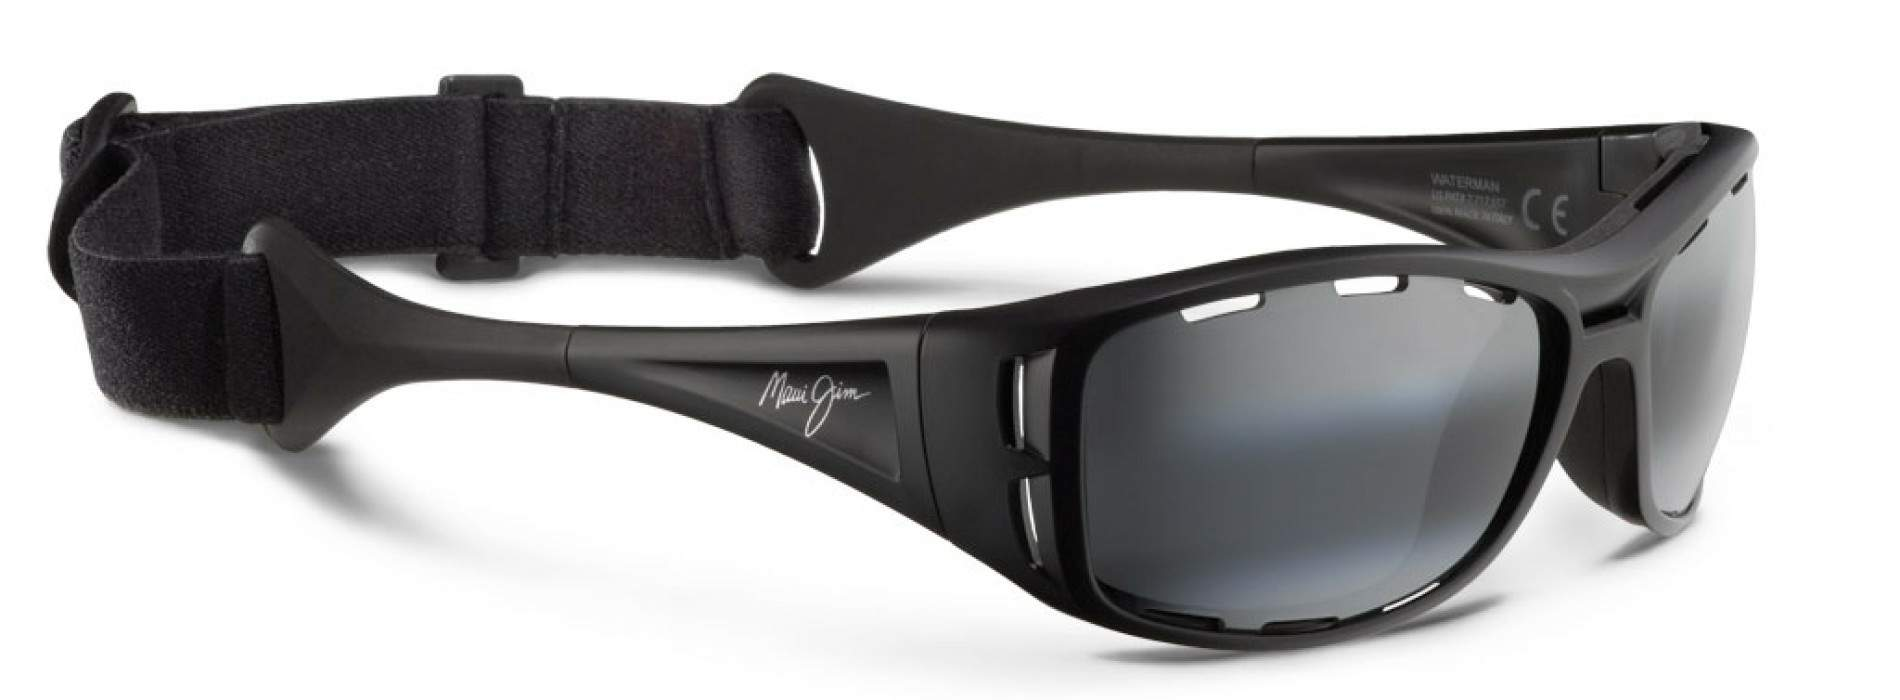 Concurso: Maui Jim Waterman